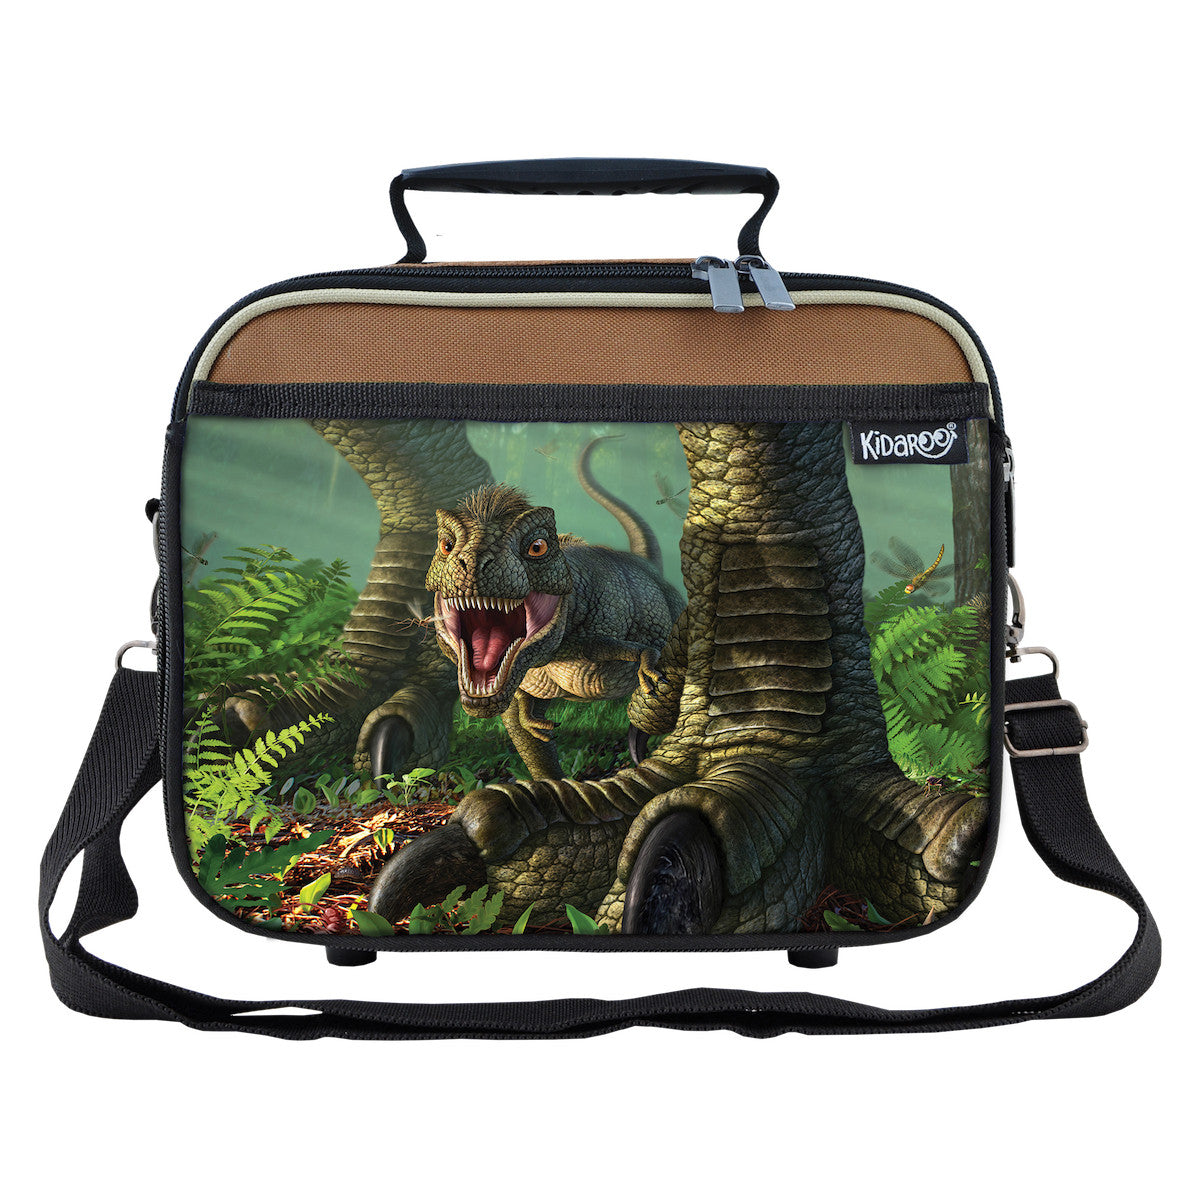 Baby Wee Rex Dinosaur School Lunchbox, Tote Bag for Boys, Girls, Kids